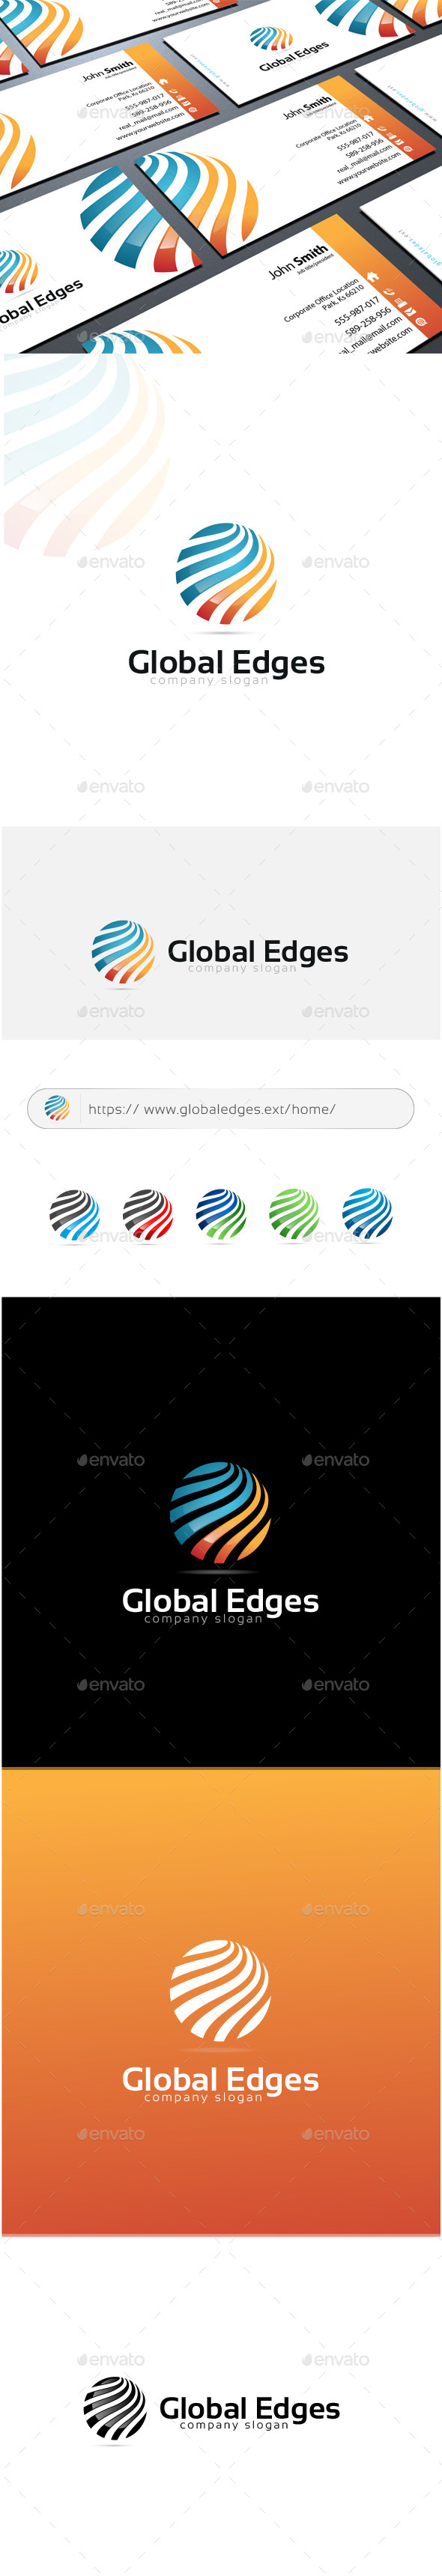 GraphicRiver Global Edges Logo 11334621